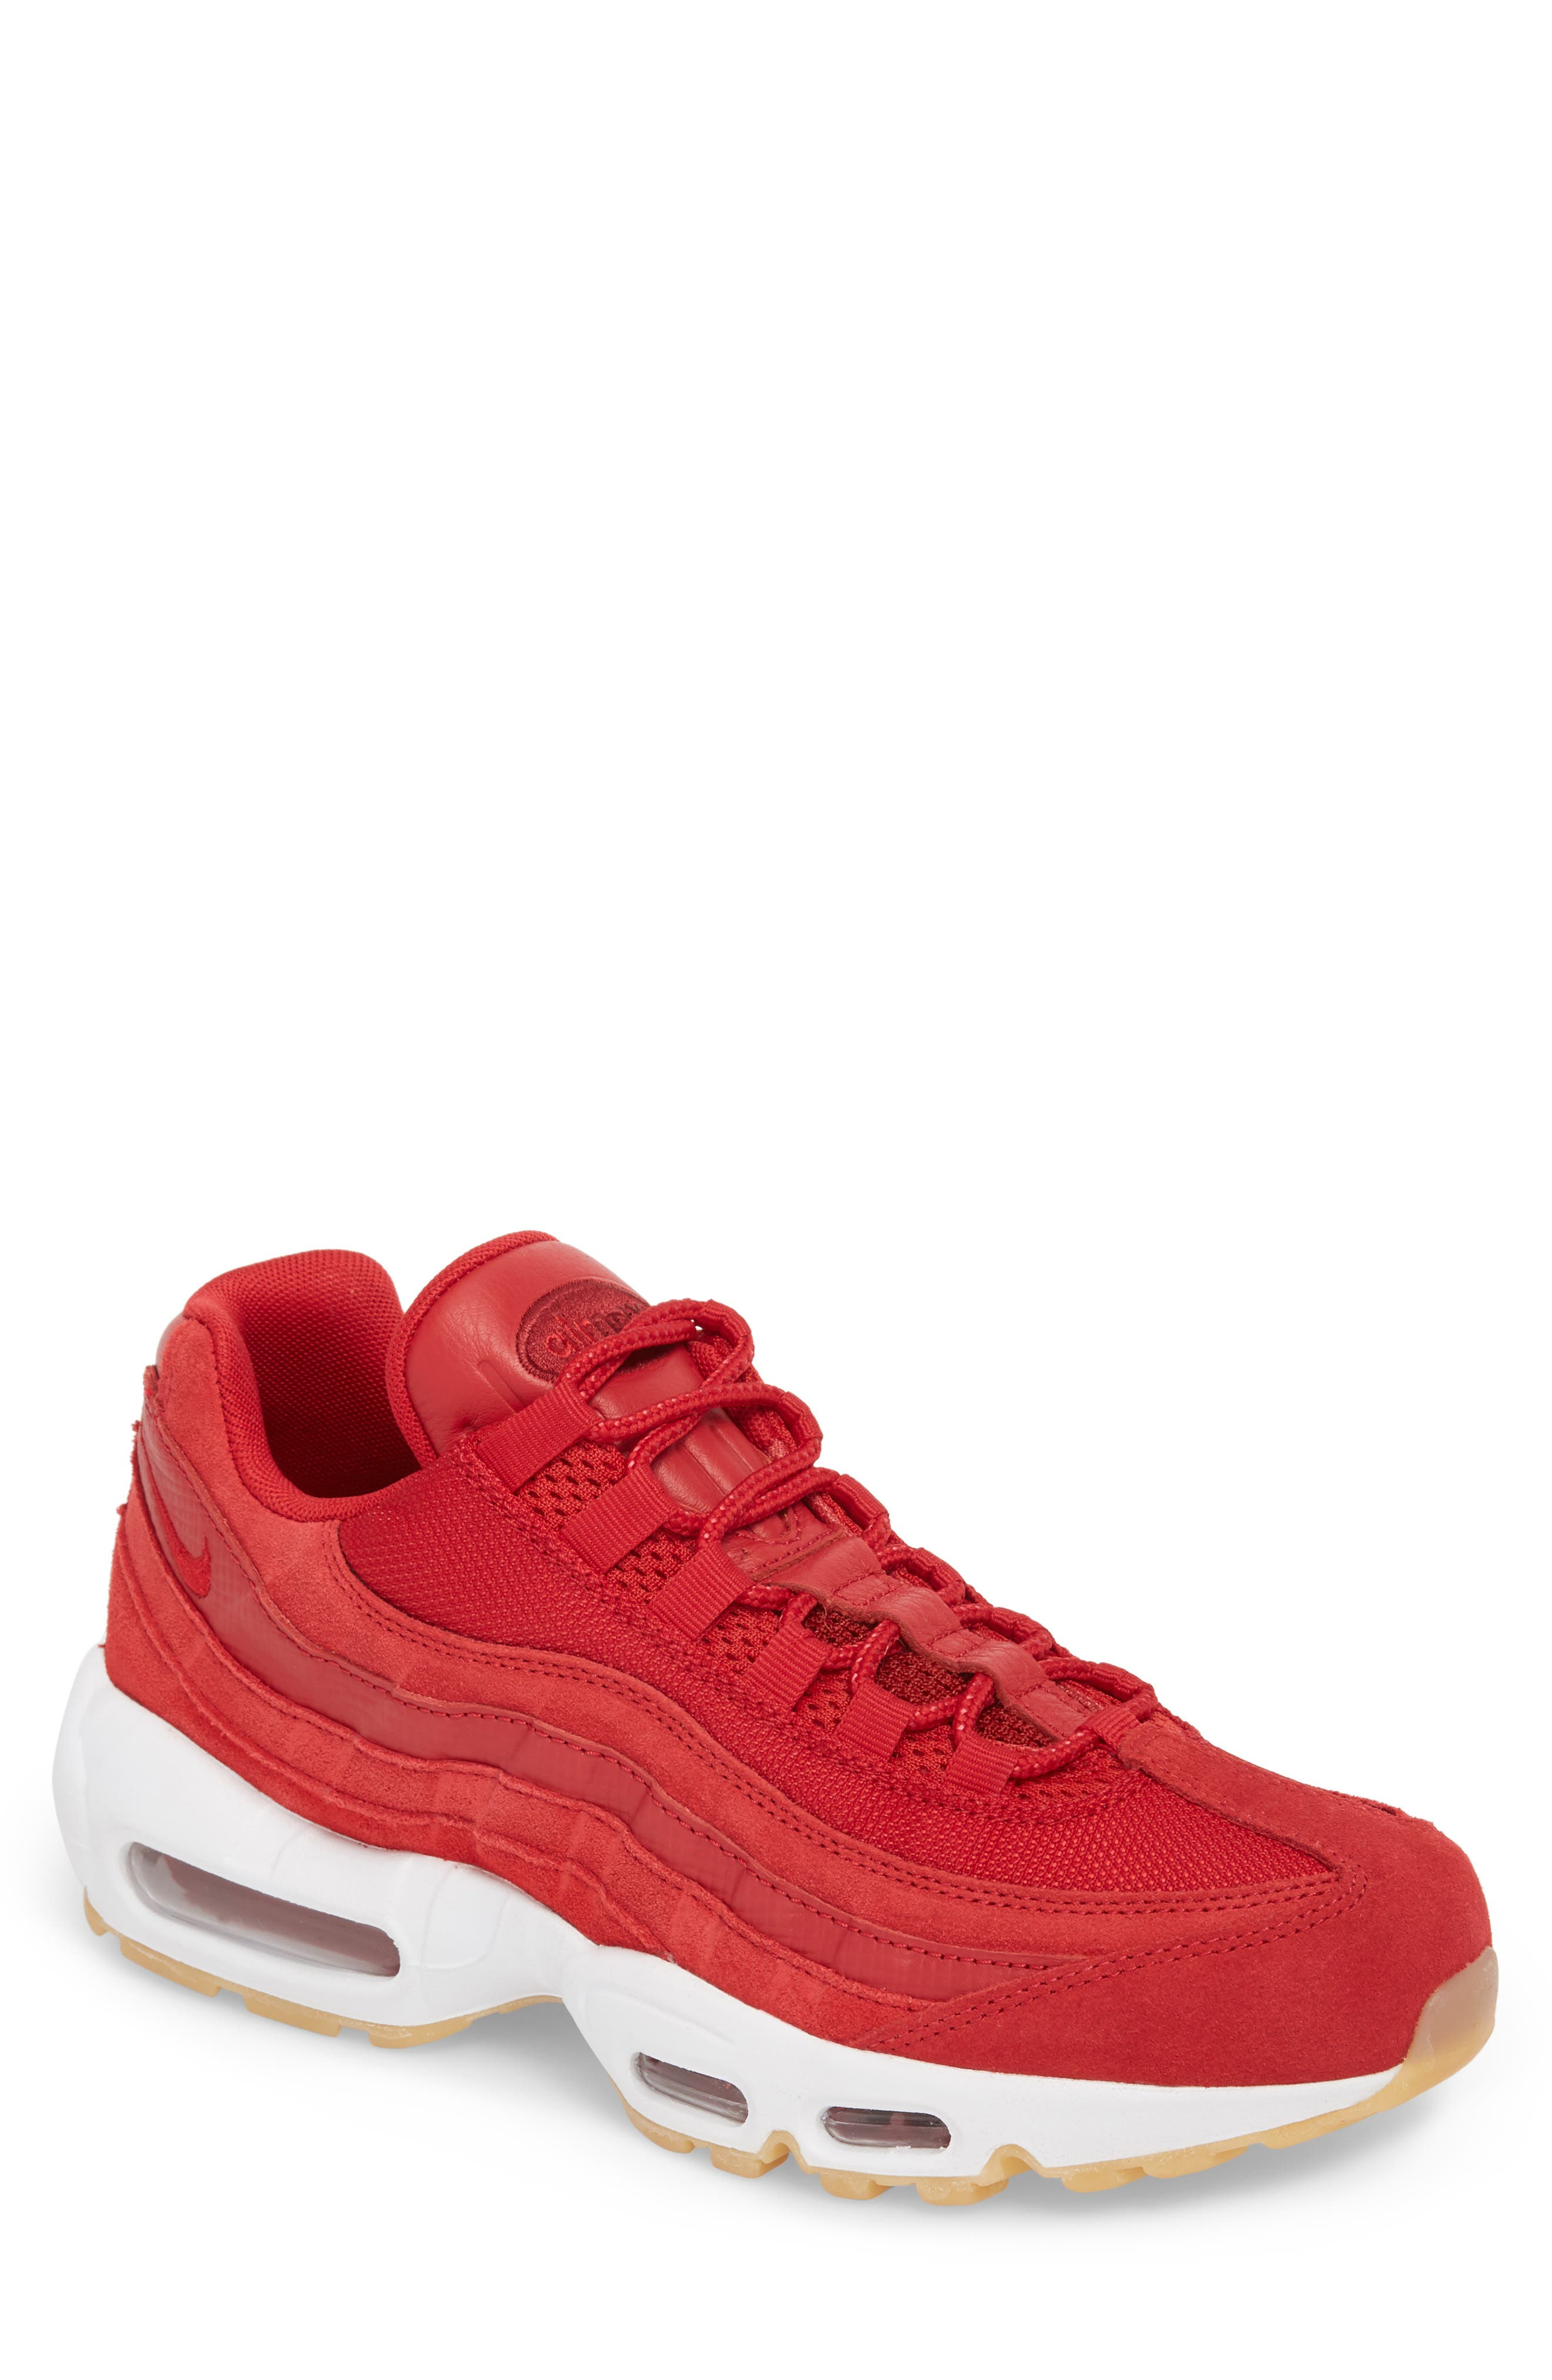 Air Max 95 Sneaker,                         Main,                         color, GYM RED/ TEAM RED/ WHITE